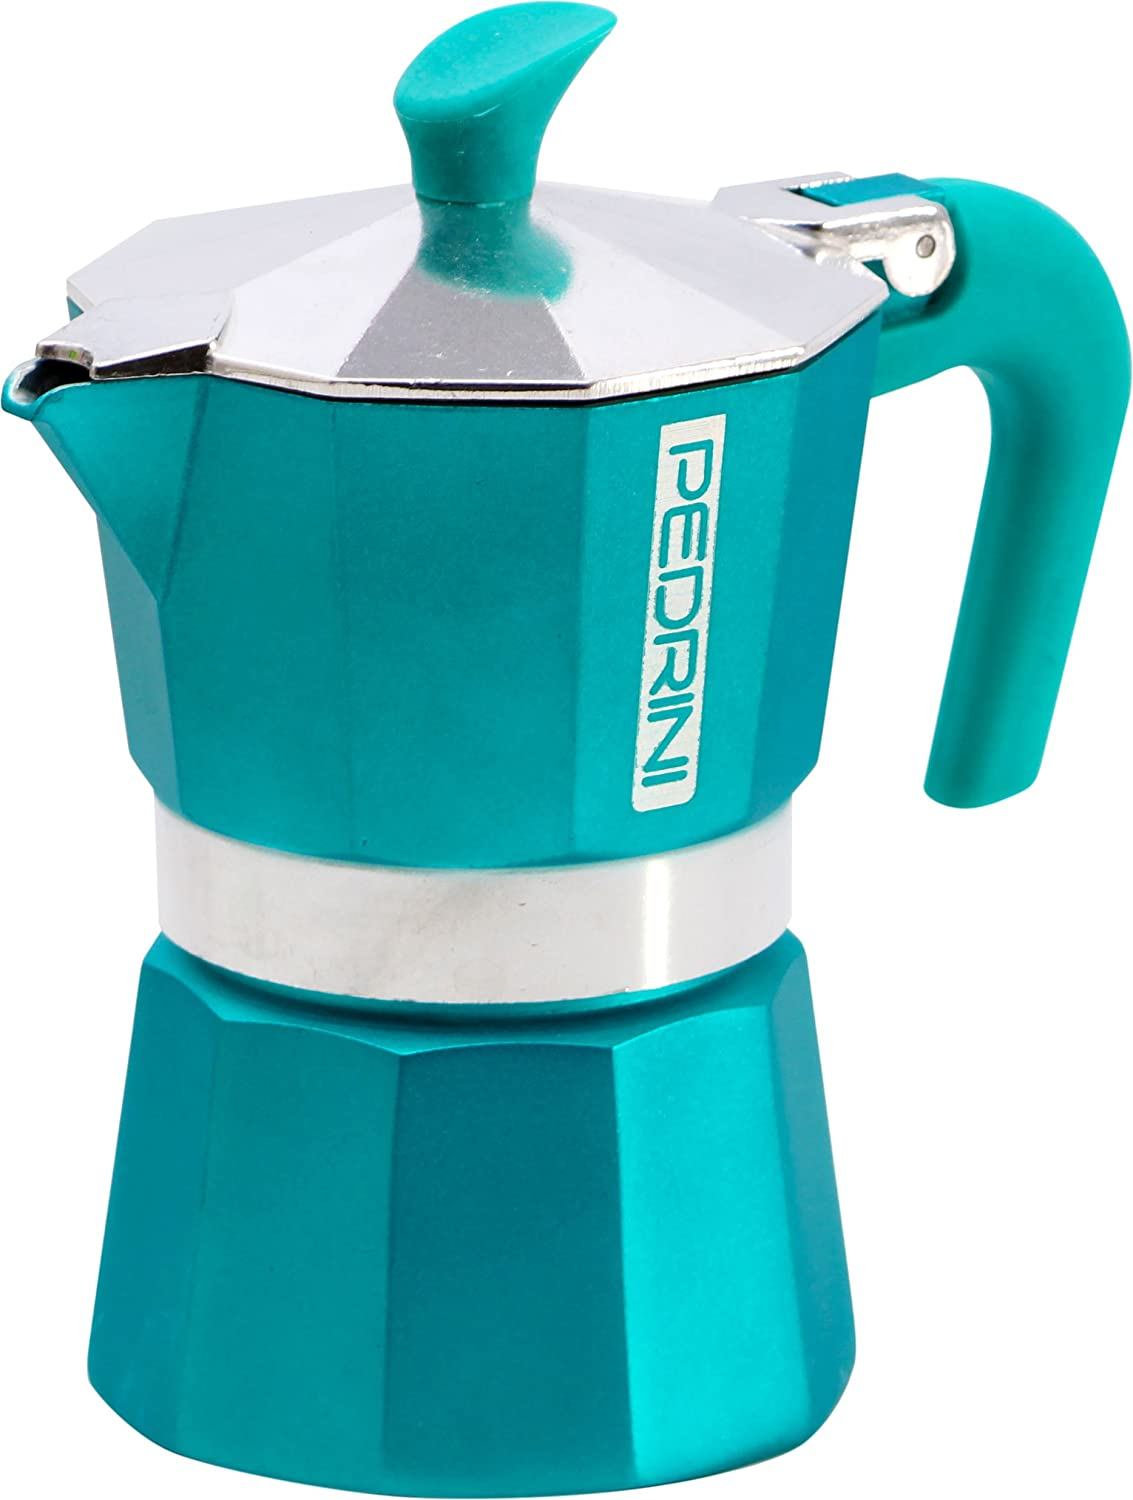 Pedrini: 3 Cups Espresso Coffee Pot, Türkis (Green/Blue) Türkis (Green/Blue)